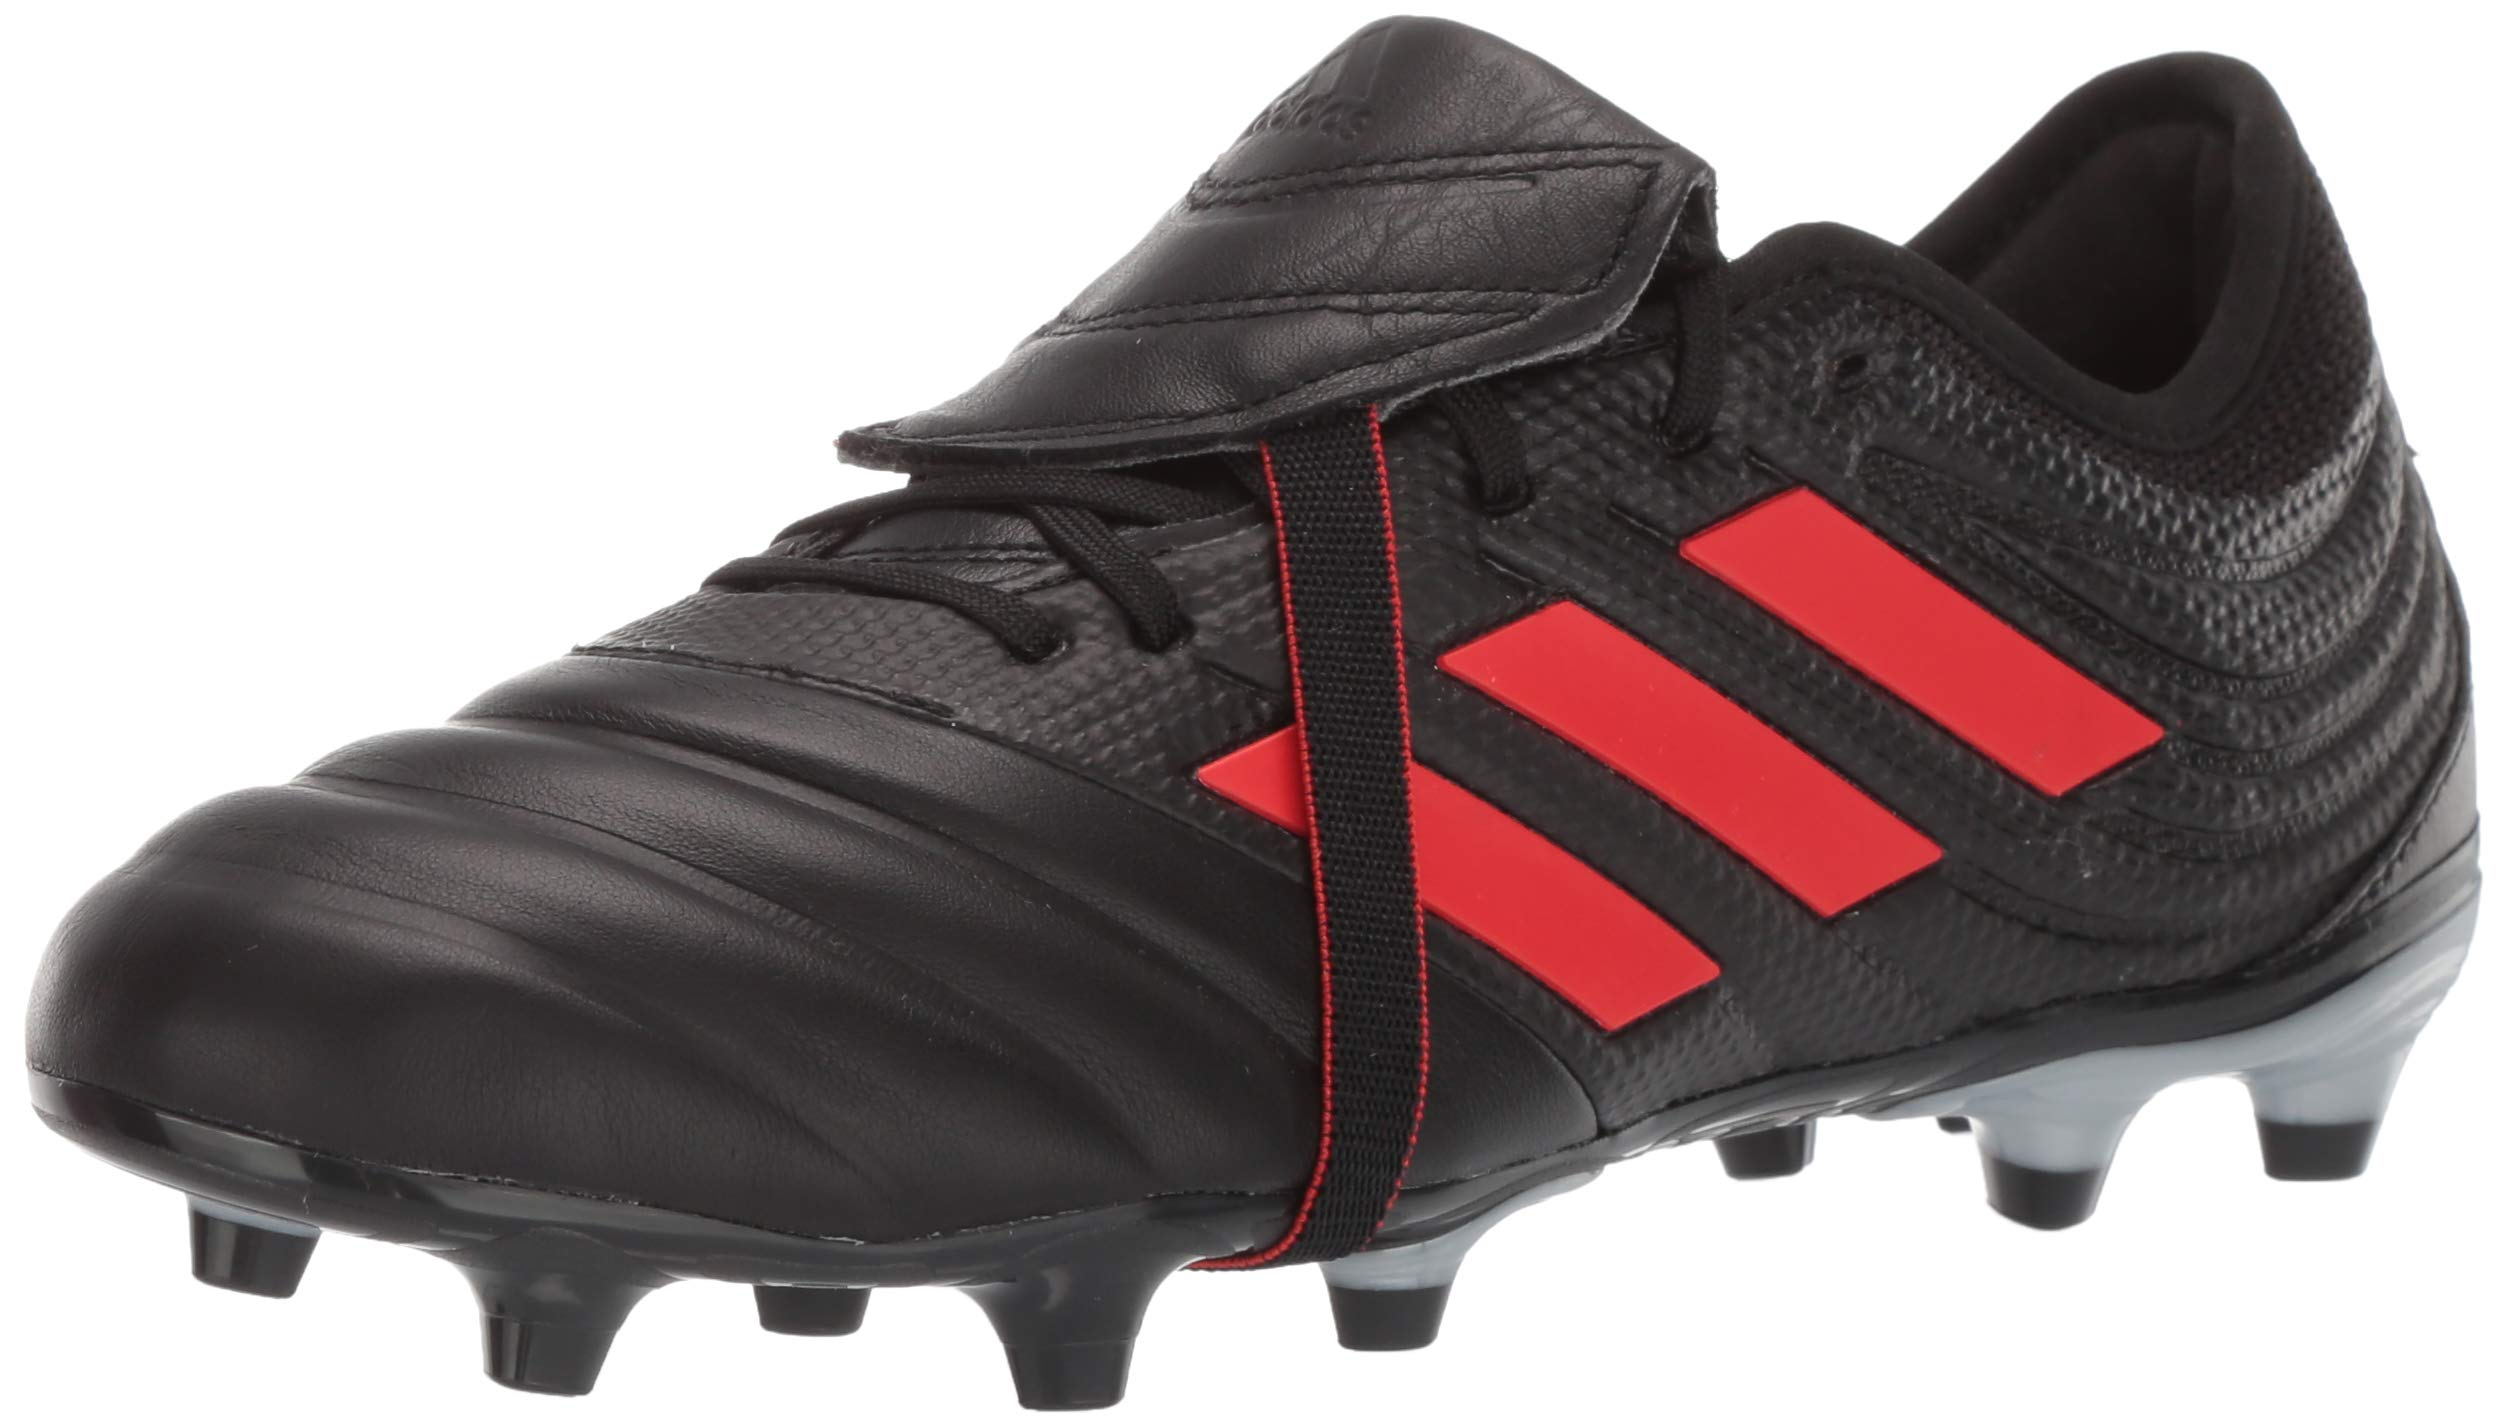 adidas Men's Copa Gloro 19.2 Firm Ground Soccer Shoe, Black/hi-res red/Silver Metallic, 6.5 M US